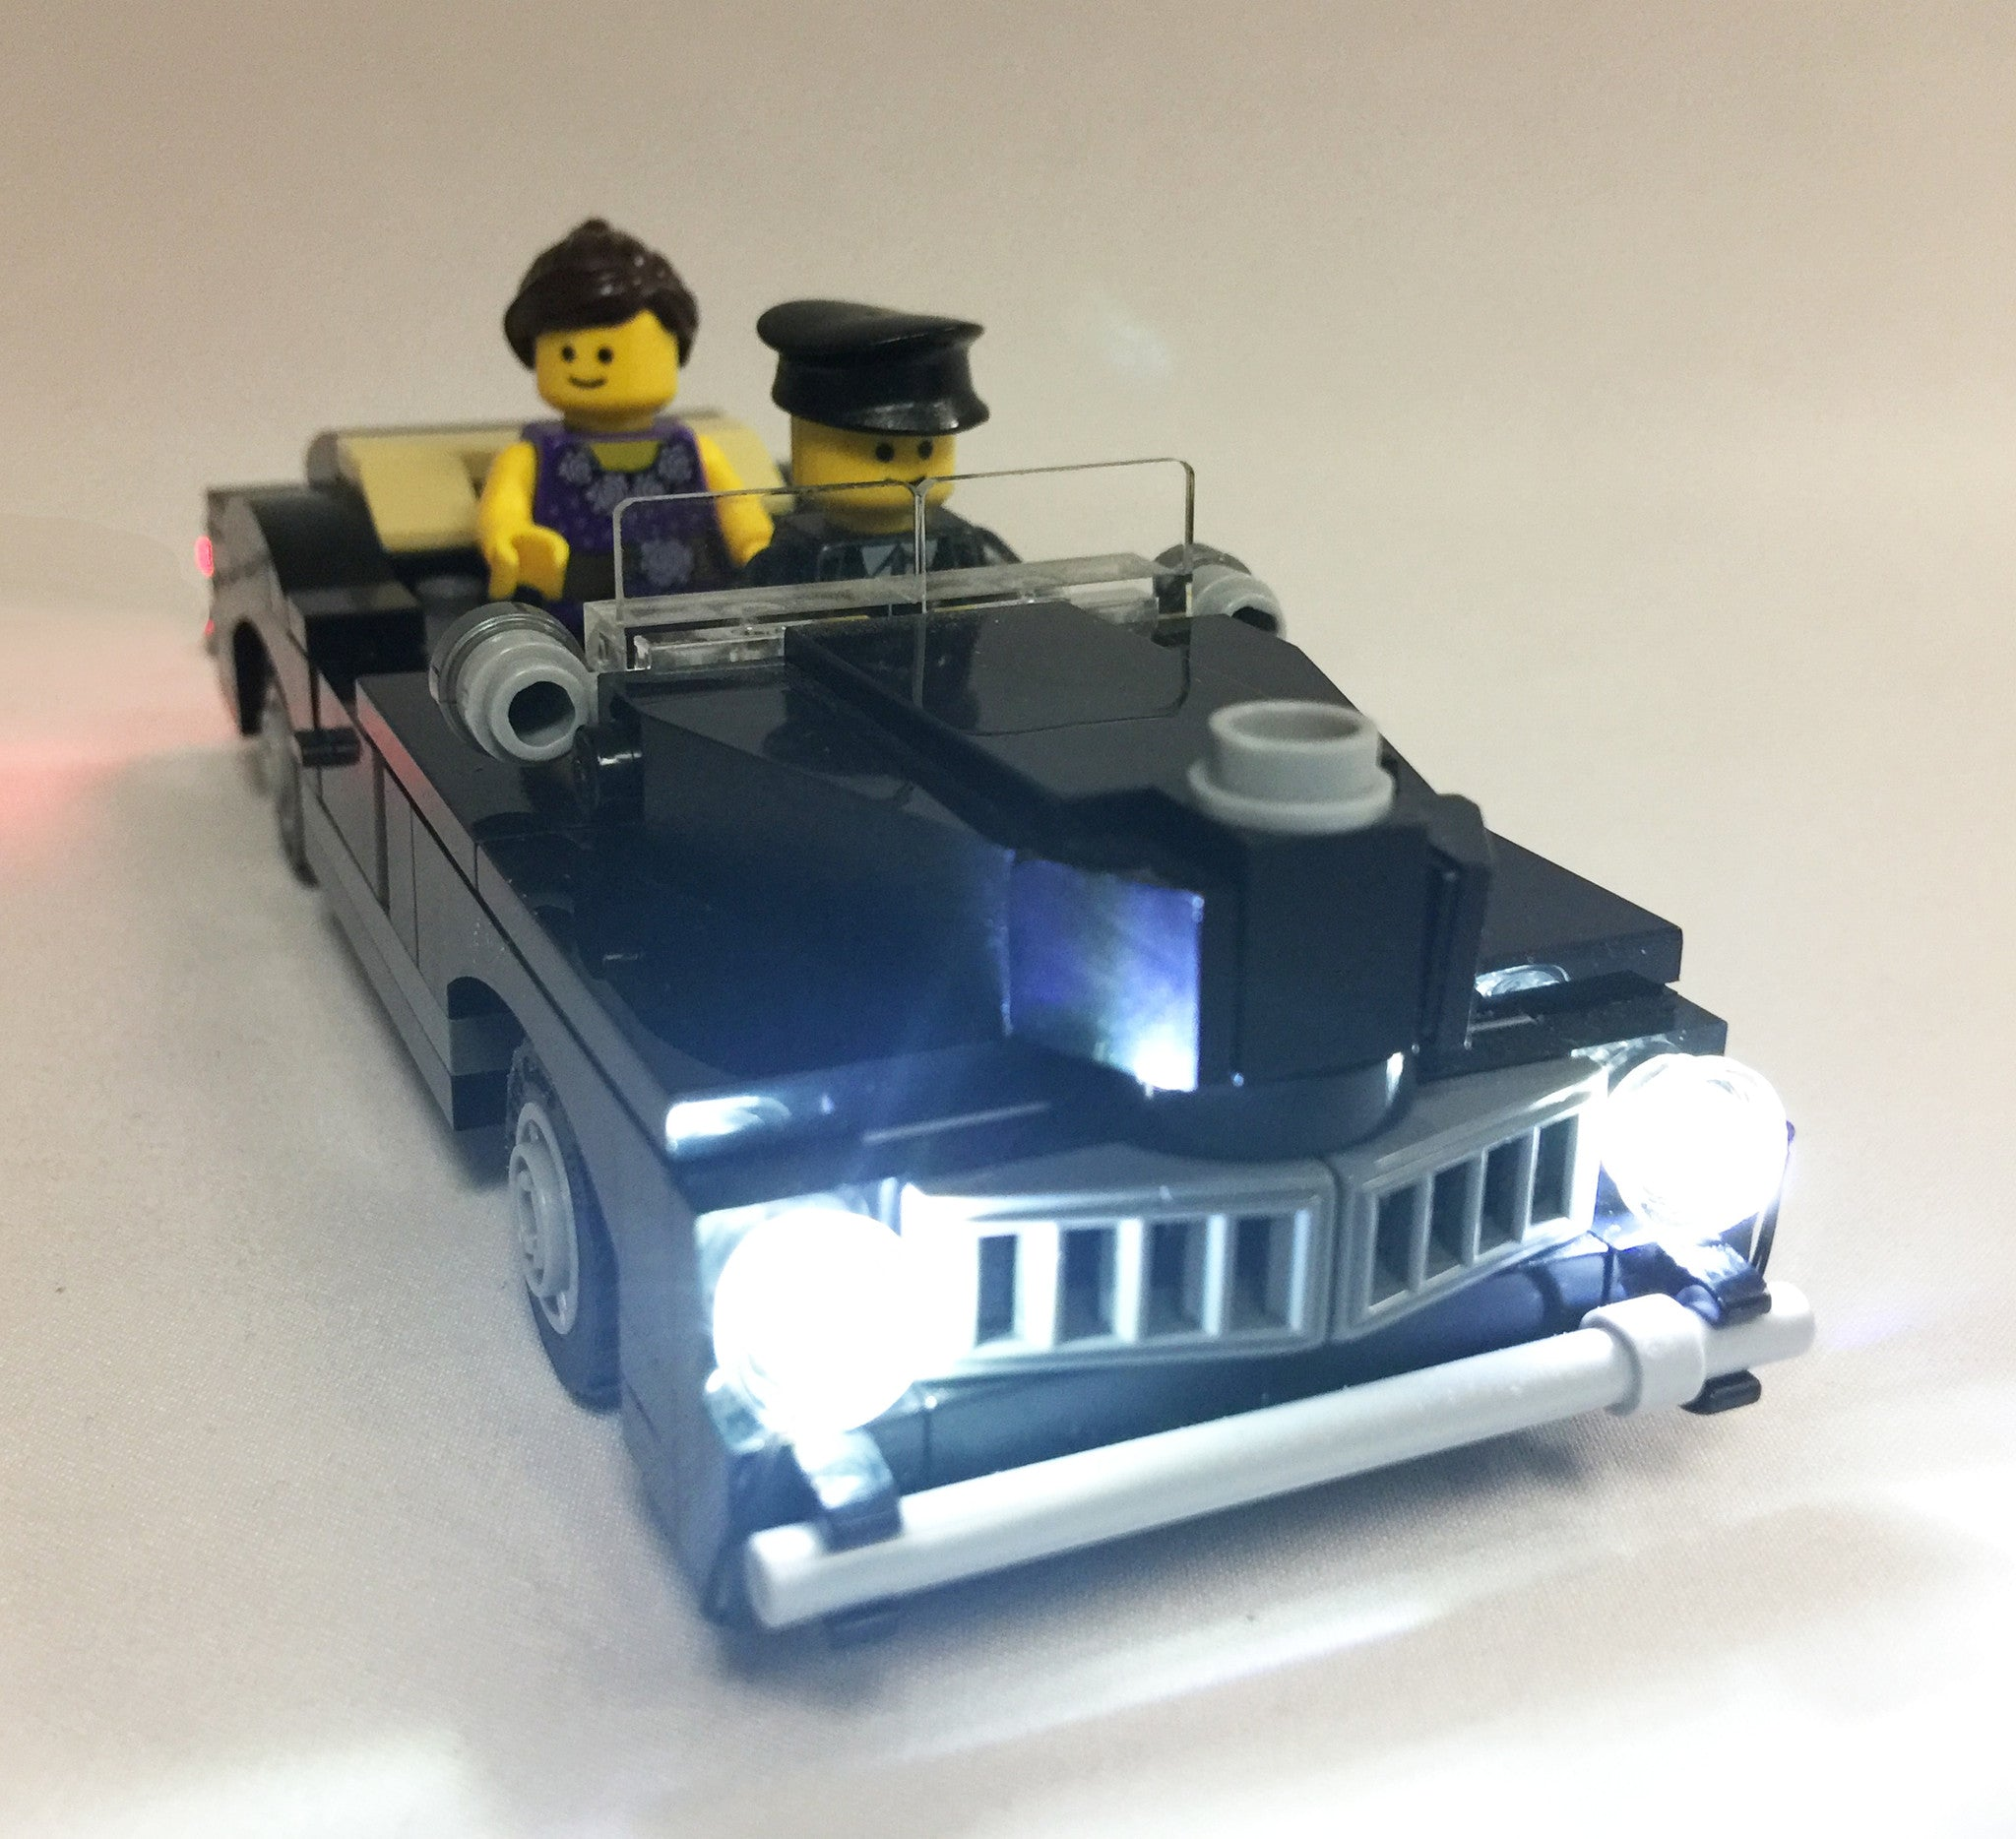 LED Lighting Kit for LEGO Cars - Double Clear and Double Red LED for Front and Rear Lights - USB